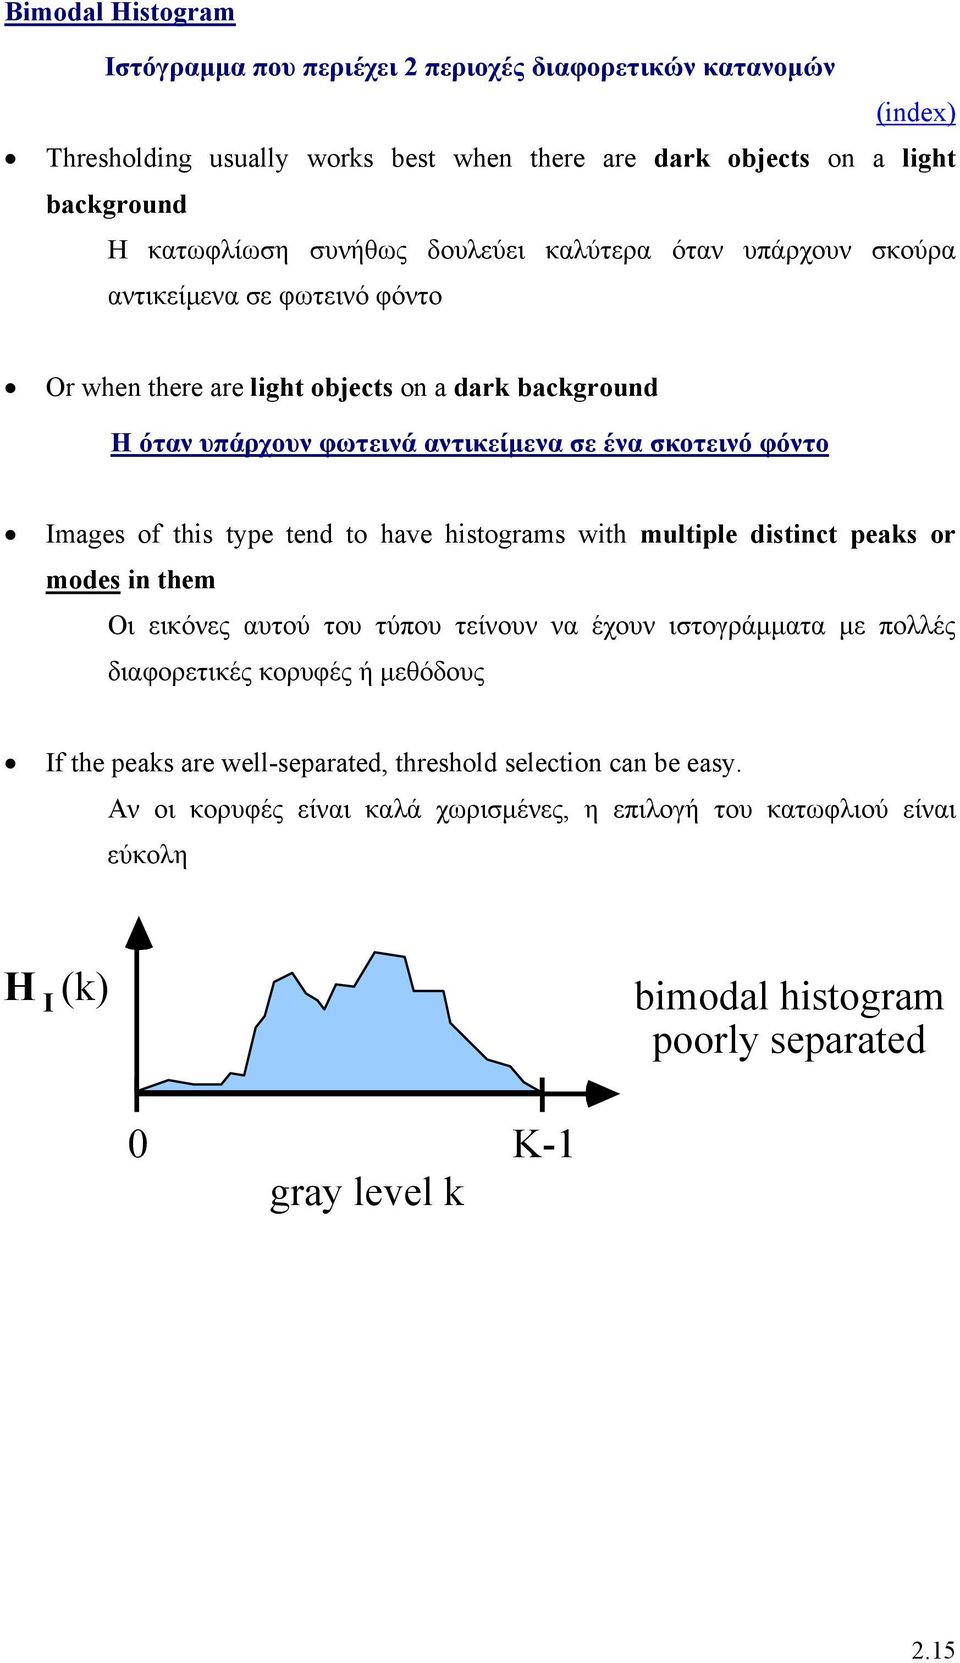 type tend to have histograms with multiple distinct peaks or modes in them Οι εικόνες αυτού του τύπου τείνουν να έχουν ιστογράµµατα µε πολλές διαφορετικές κορυφές ή µεθόδους If the peaks